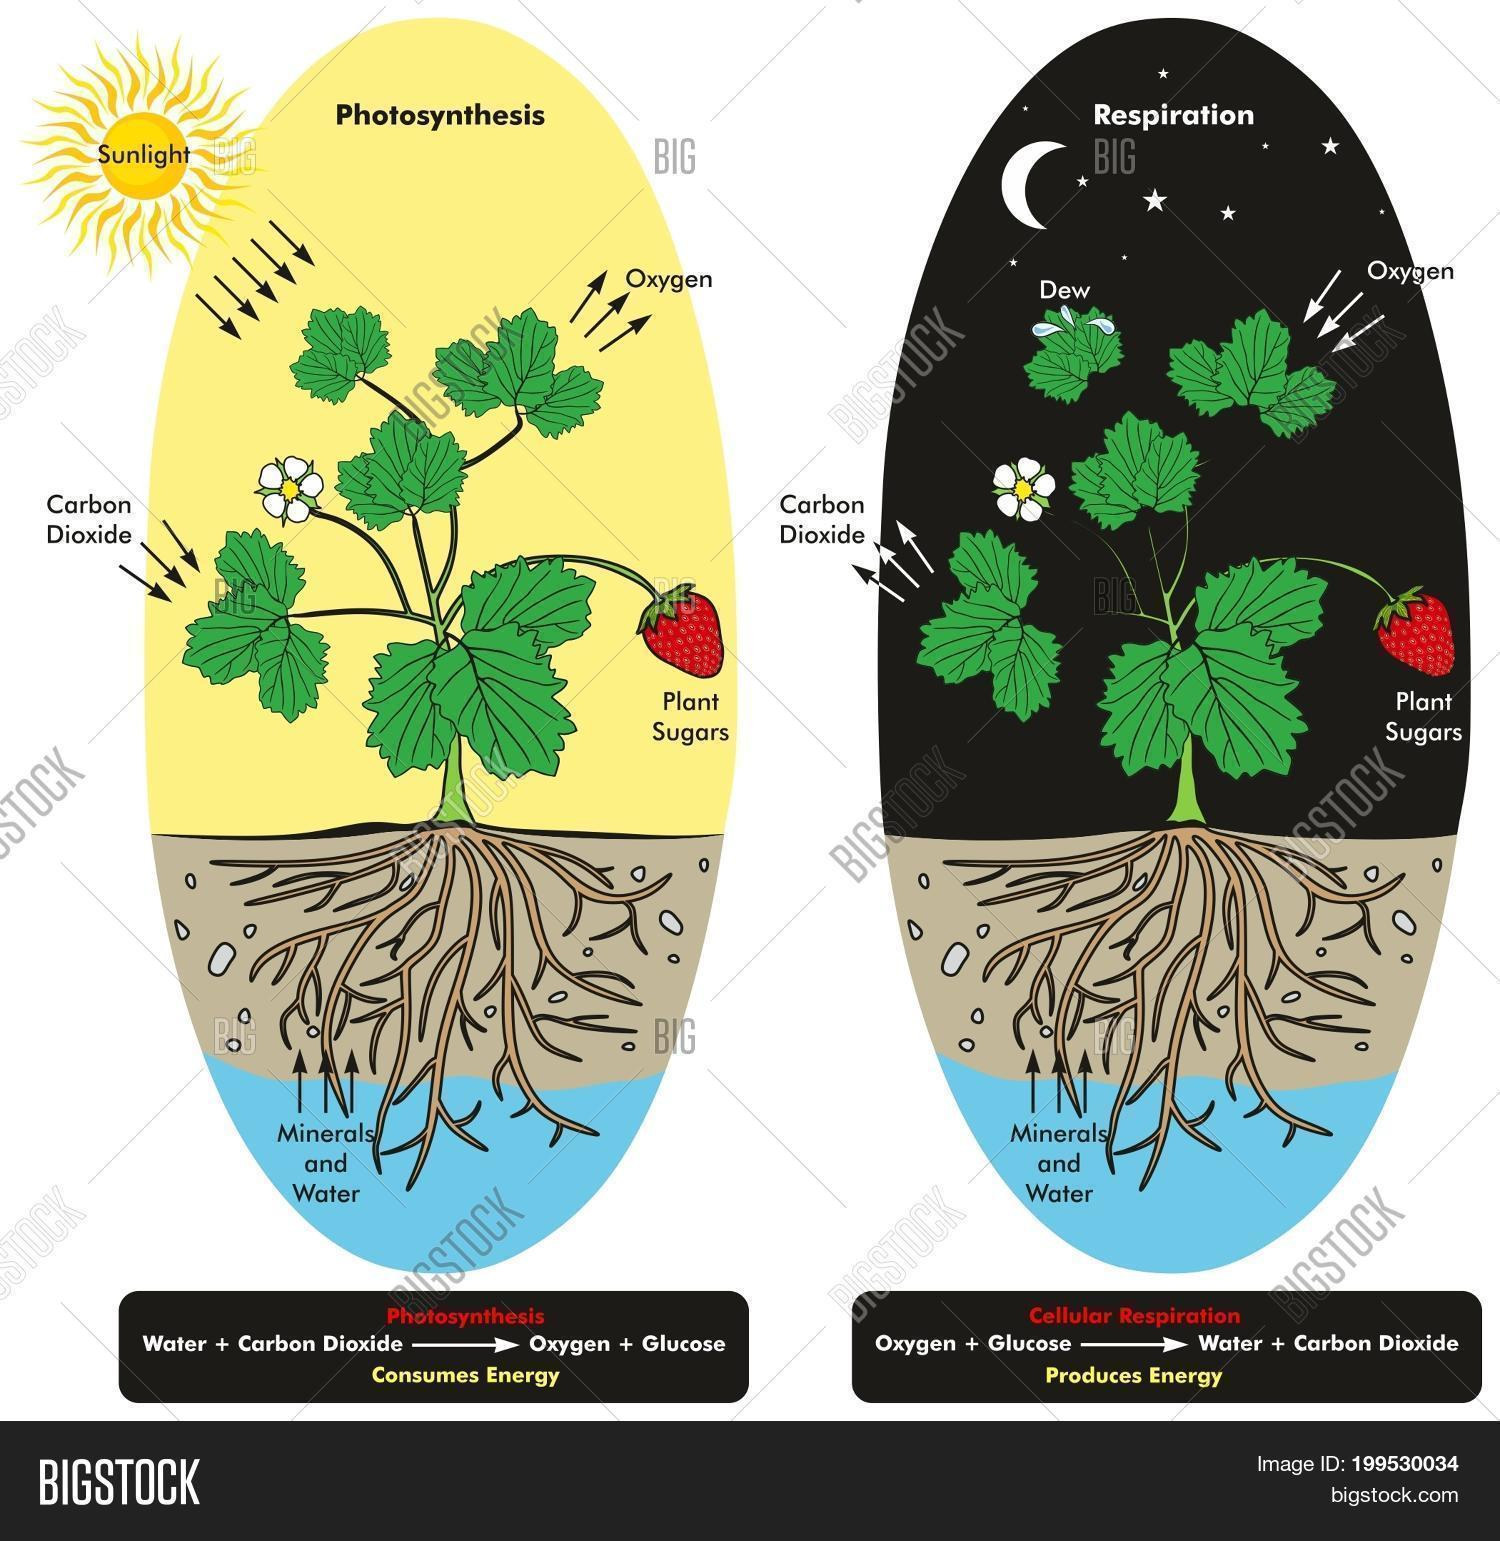 Photosynthesis image photo free trial bigstock photosynthesis and cellular respiration process of plant during day and night time infographic diagram showing comparison ccuart Gallery